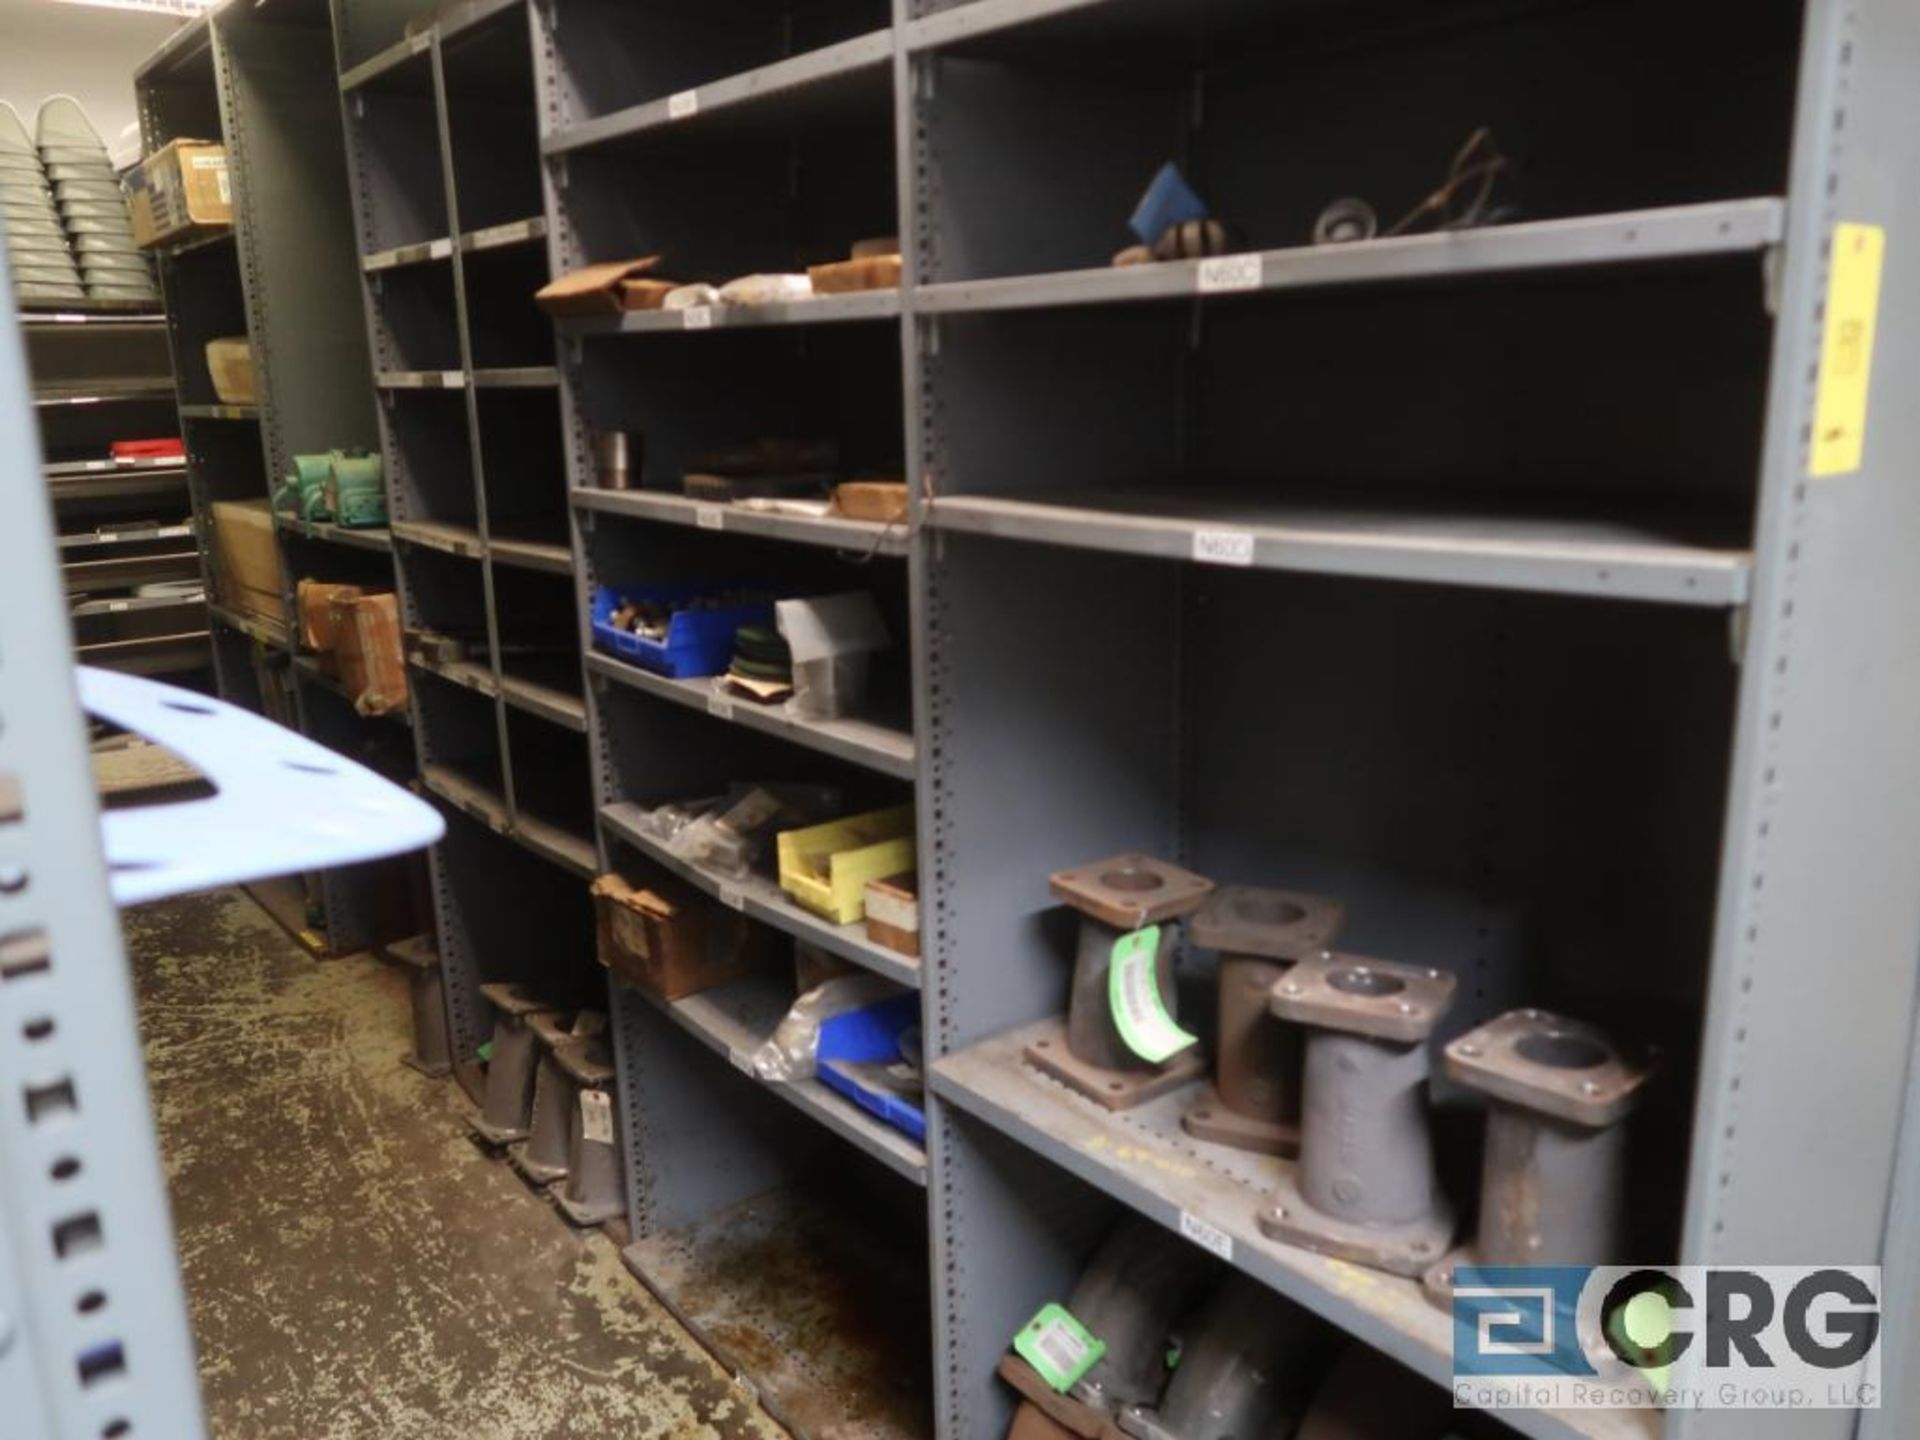 Lot of (35) sections with assorted parts including gaskets, fittings, shaft pins, gears, and - Image 9 of 17